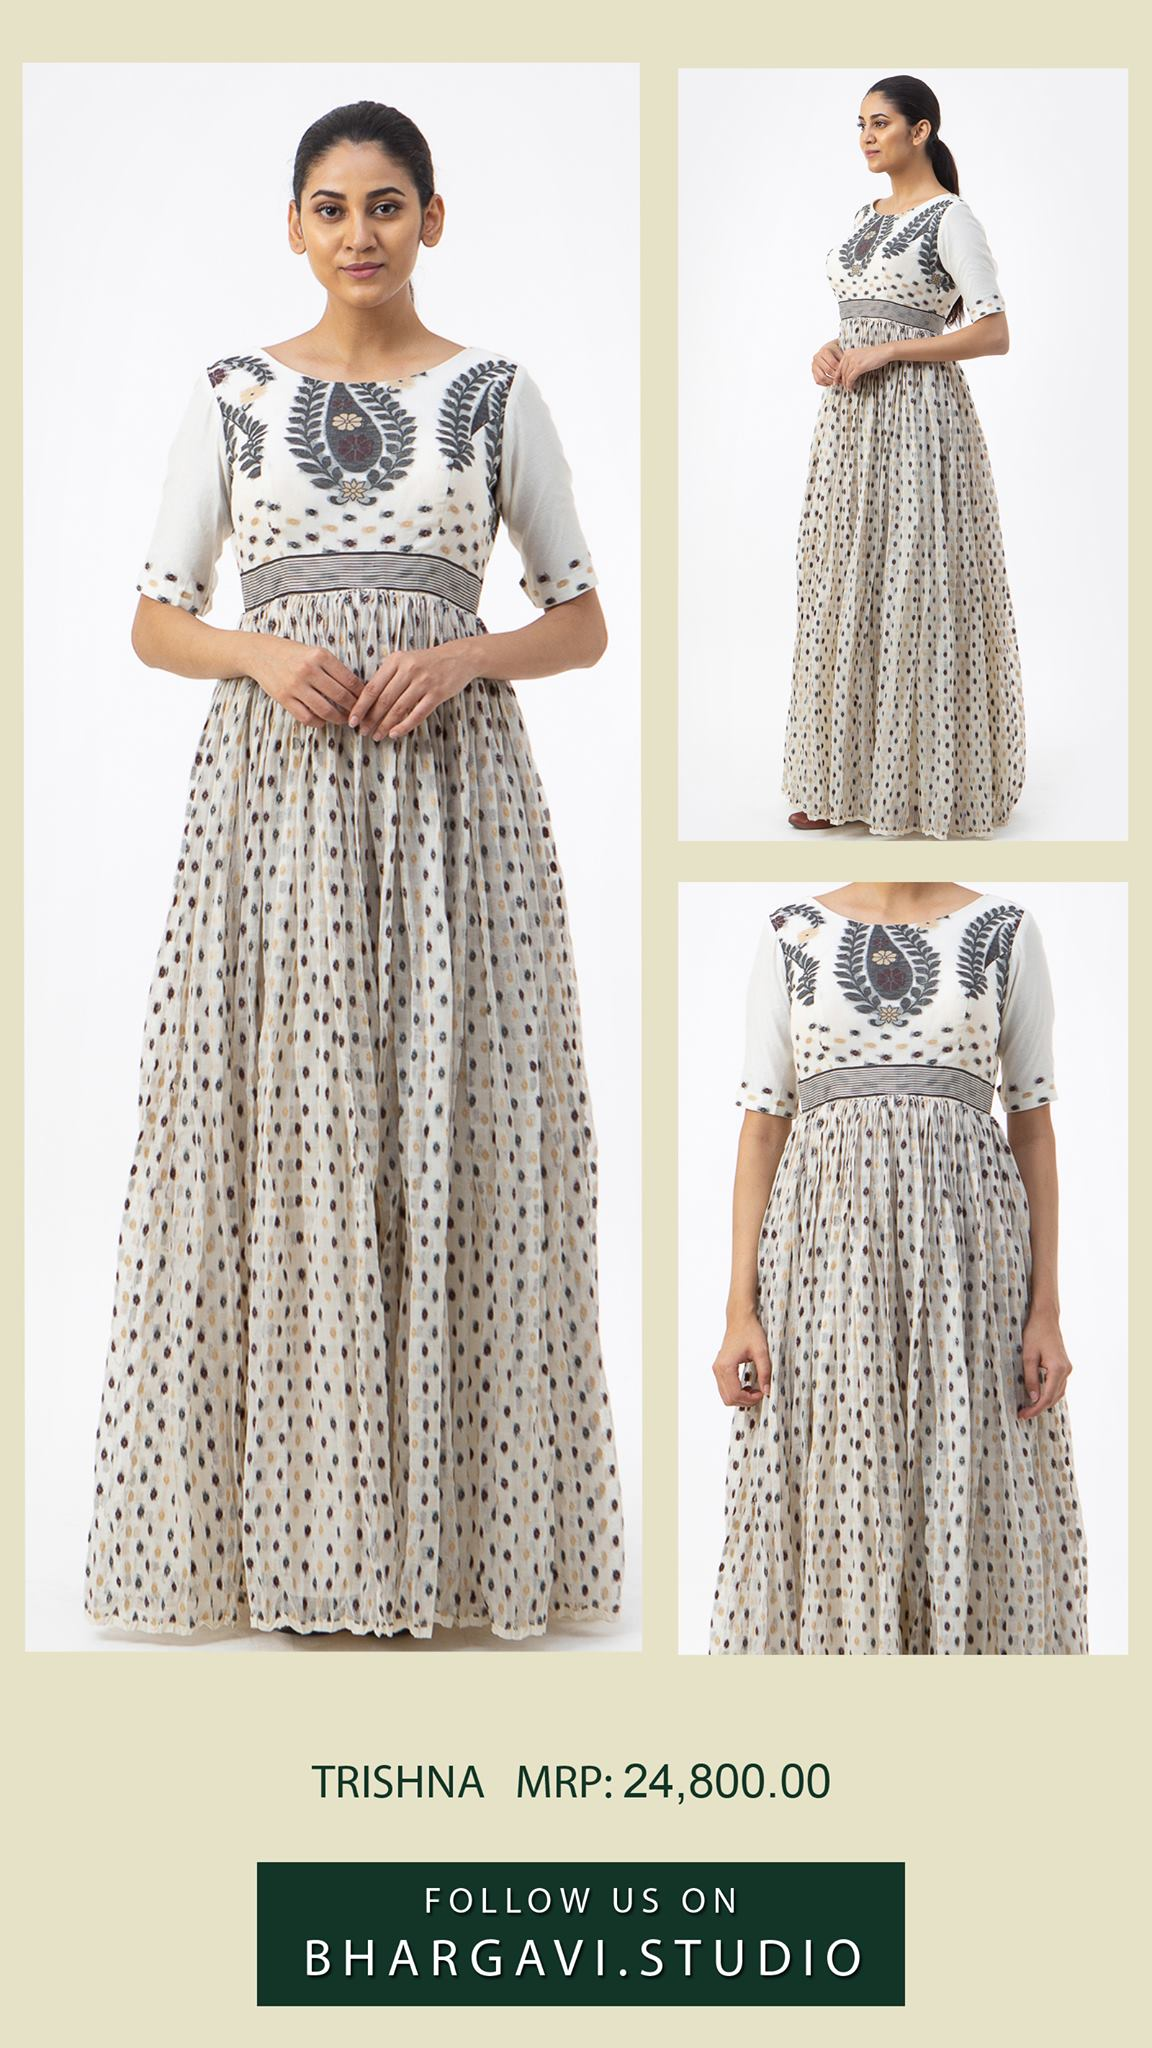 Statement style signature long frock in white and black jamdani composed in a gathered pattern.  2021-06-15